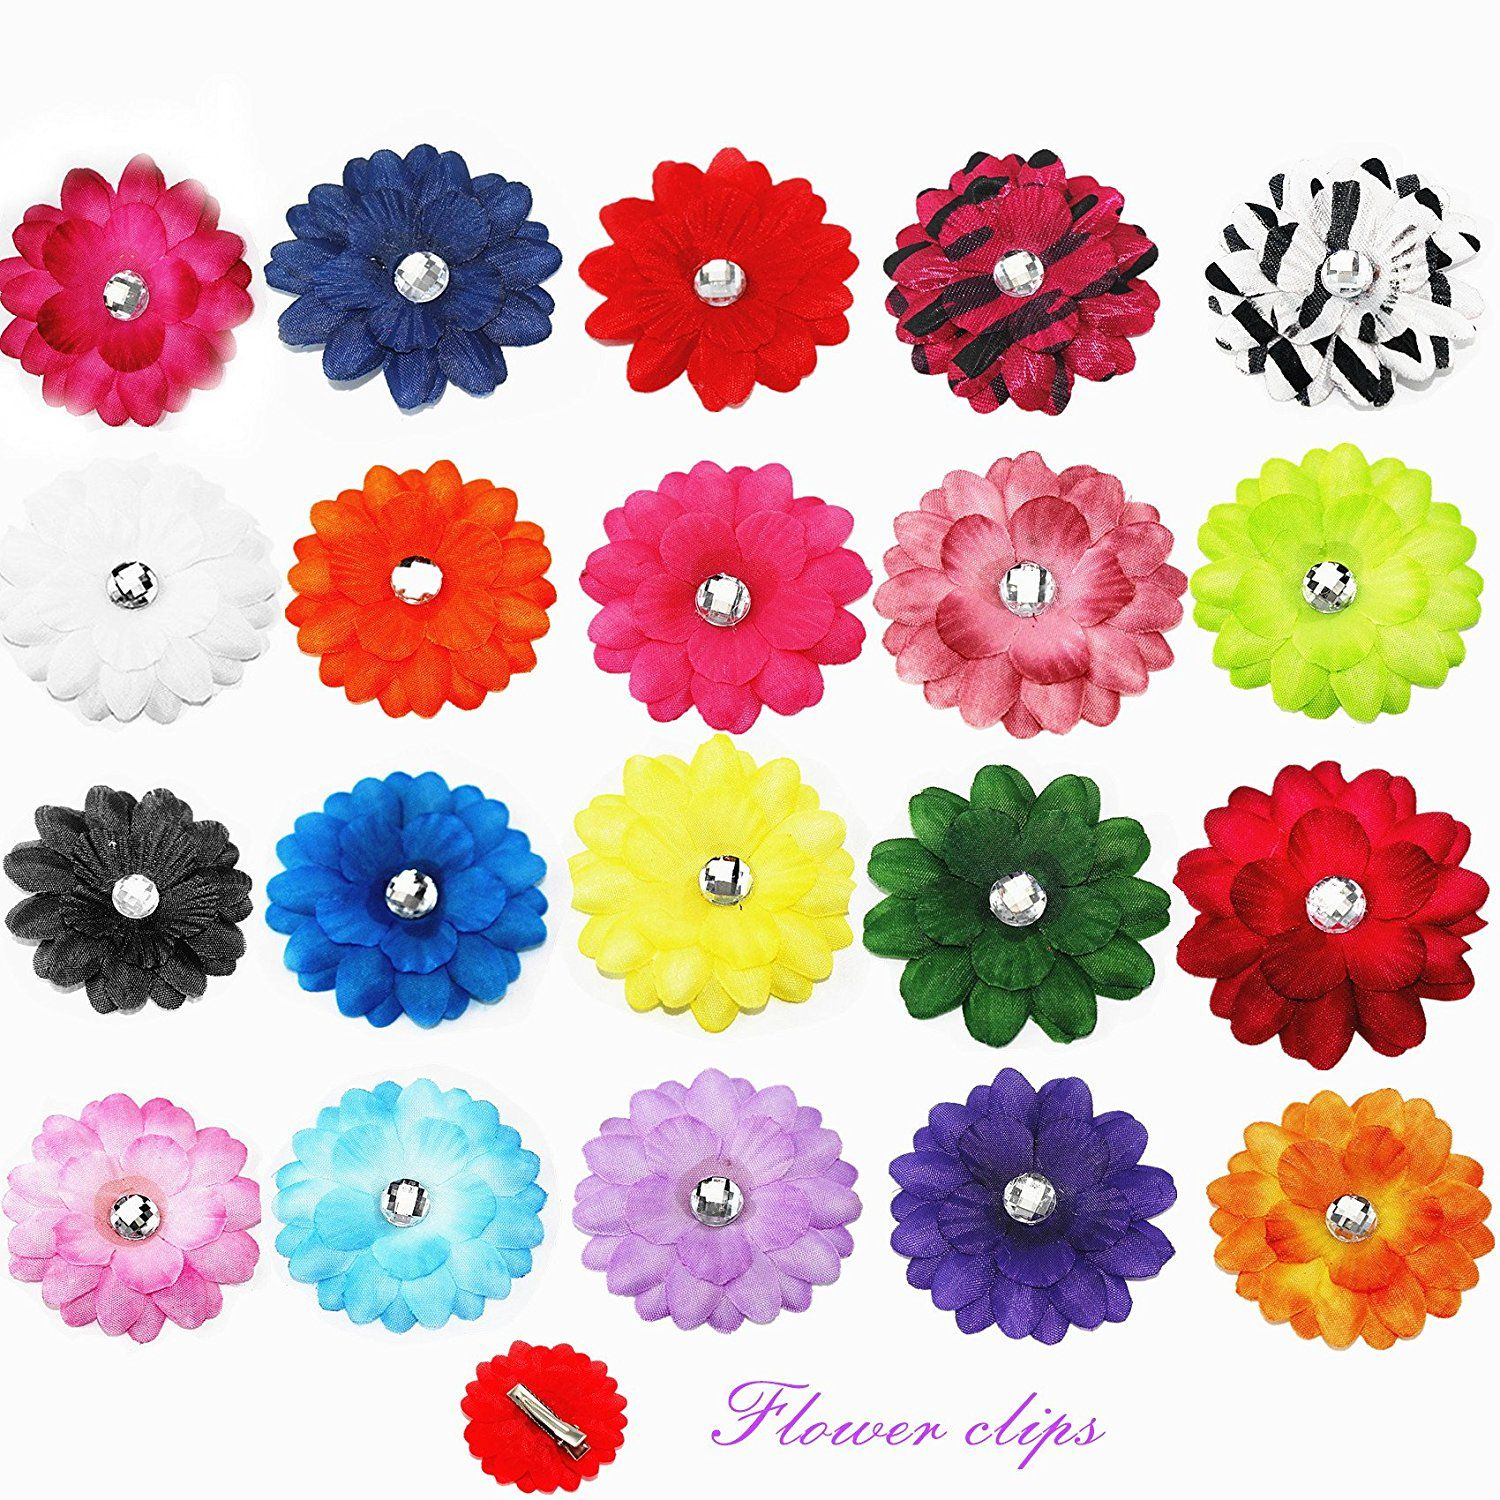 0b6b5ce6e2c27 Cellot Alligator Hair Clips for Kids (20-Piece Set) - 2 inches Hair Daisy  Flower Hairpins for Children